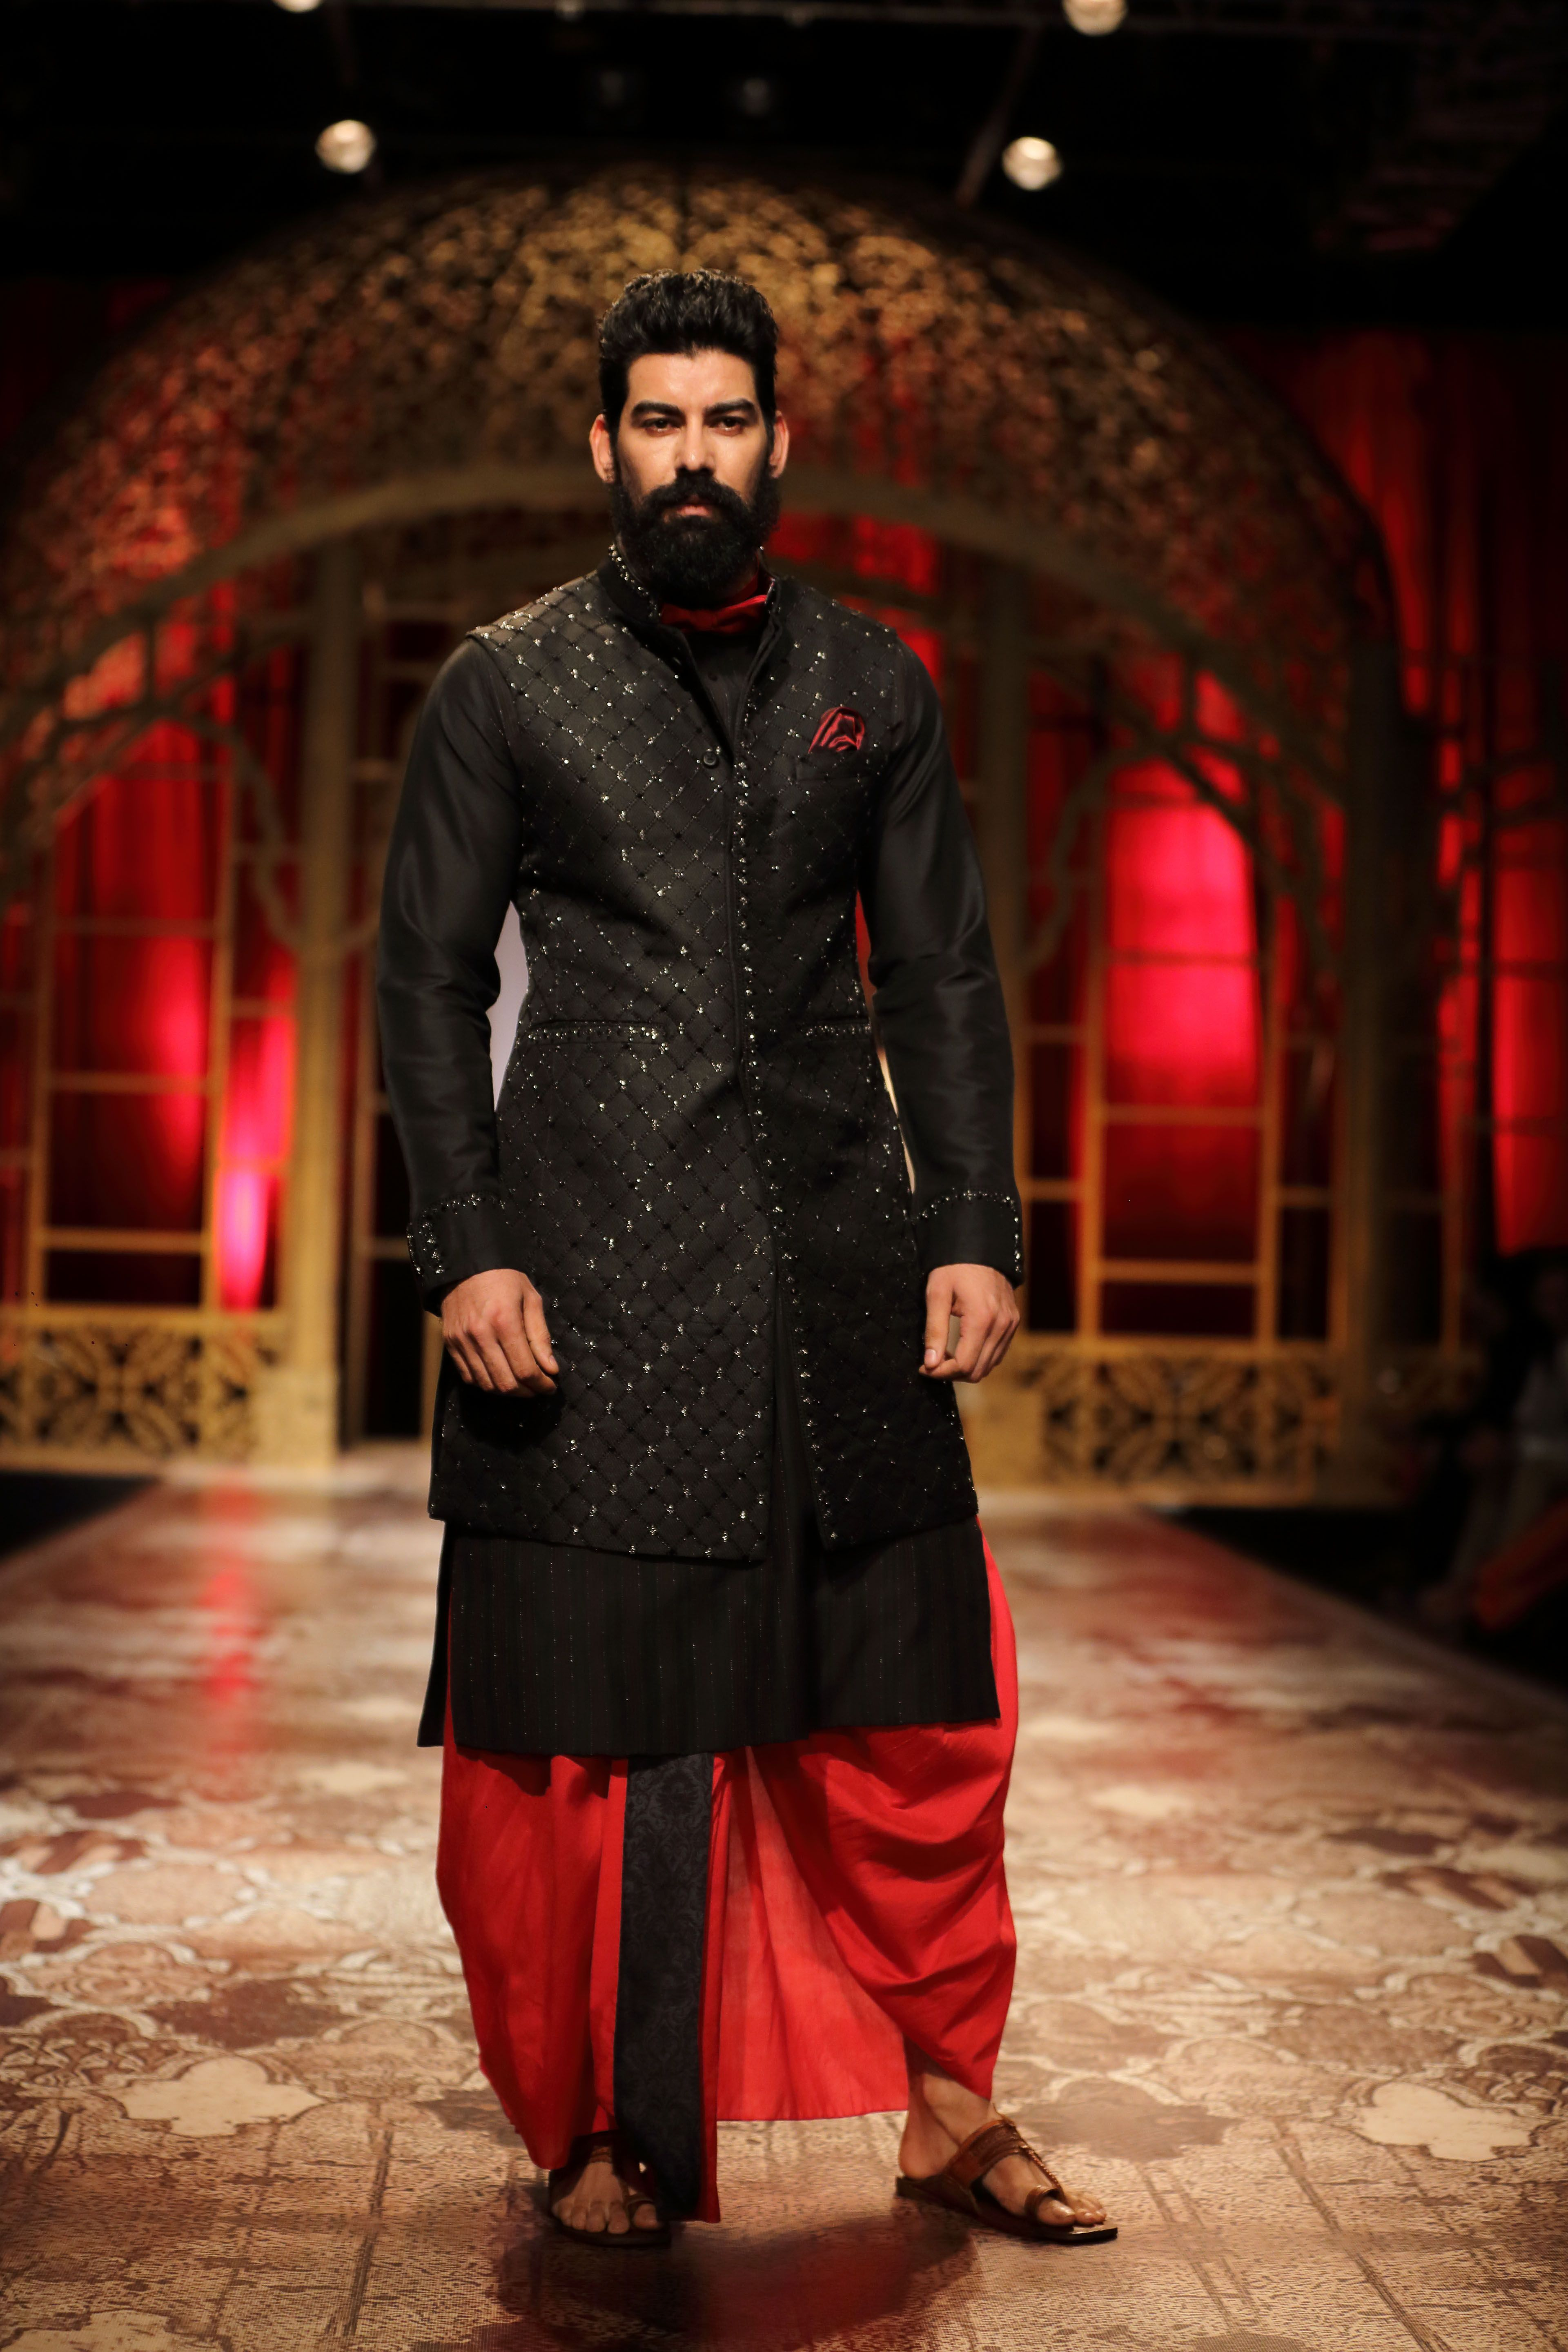 Groom kurta suits black wedding kurta designs asifa and nabeel men - The Classic Dhoti Paired With A Long Bandhgala Jacket And Kurta